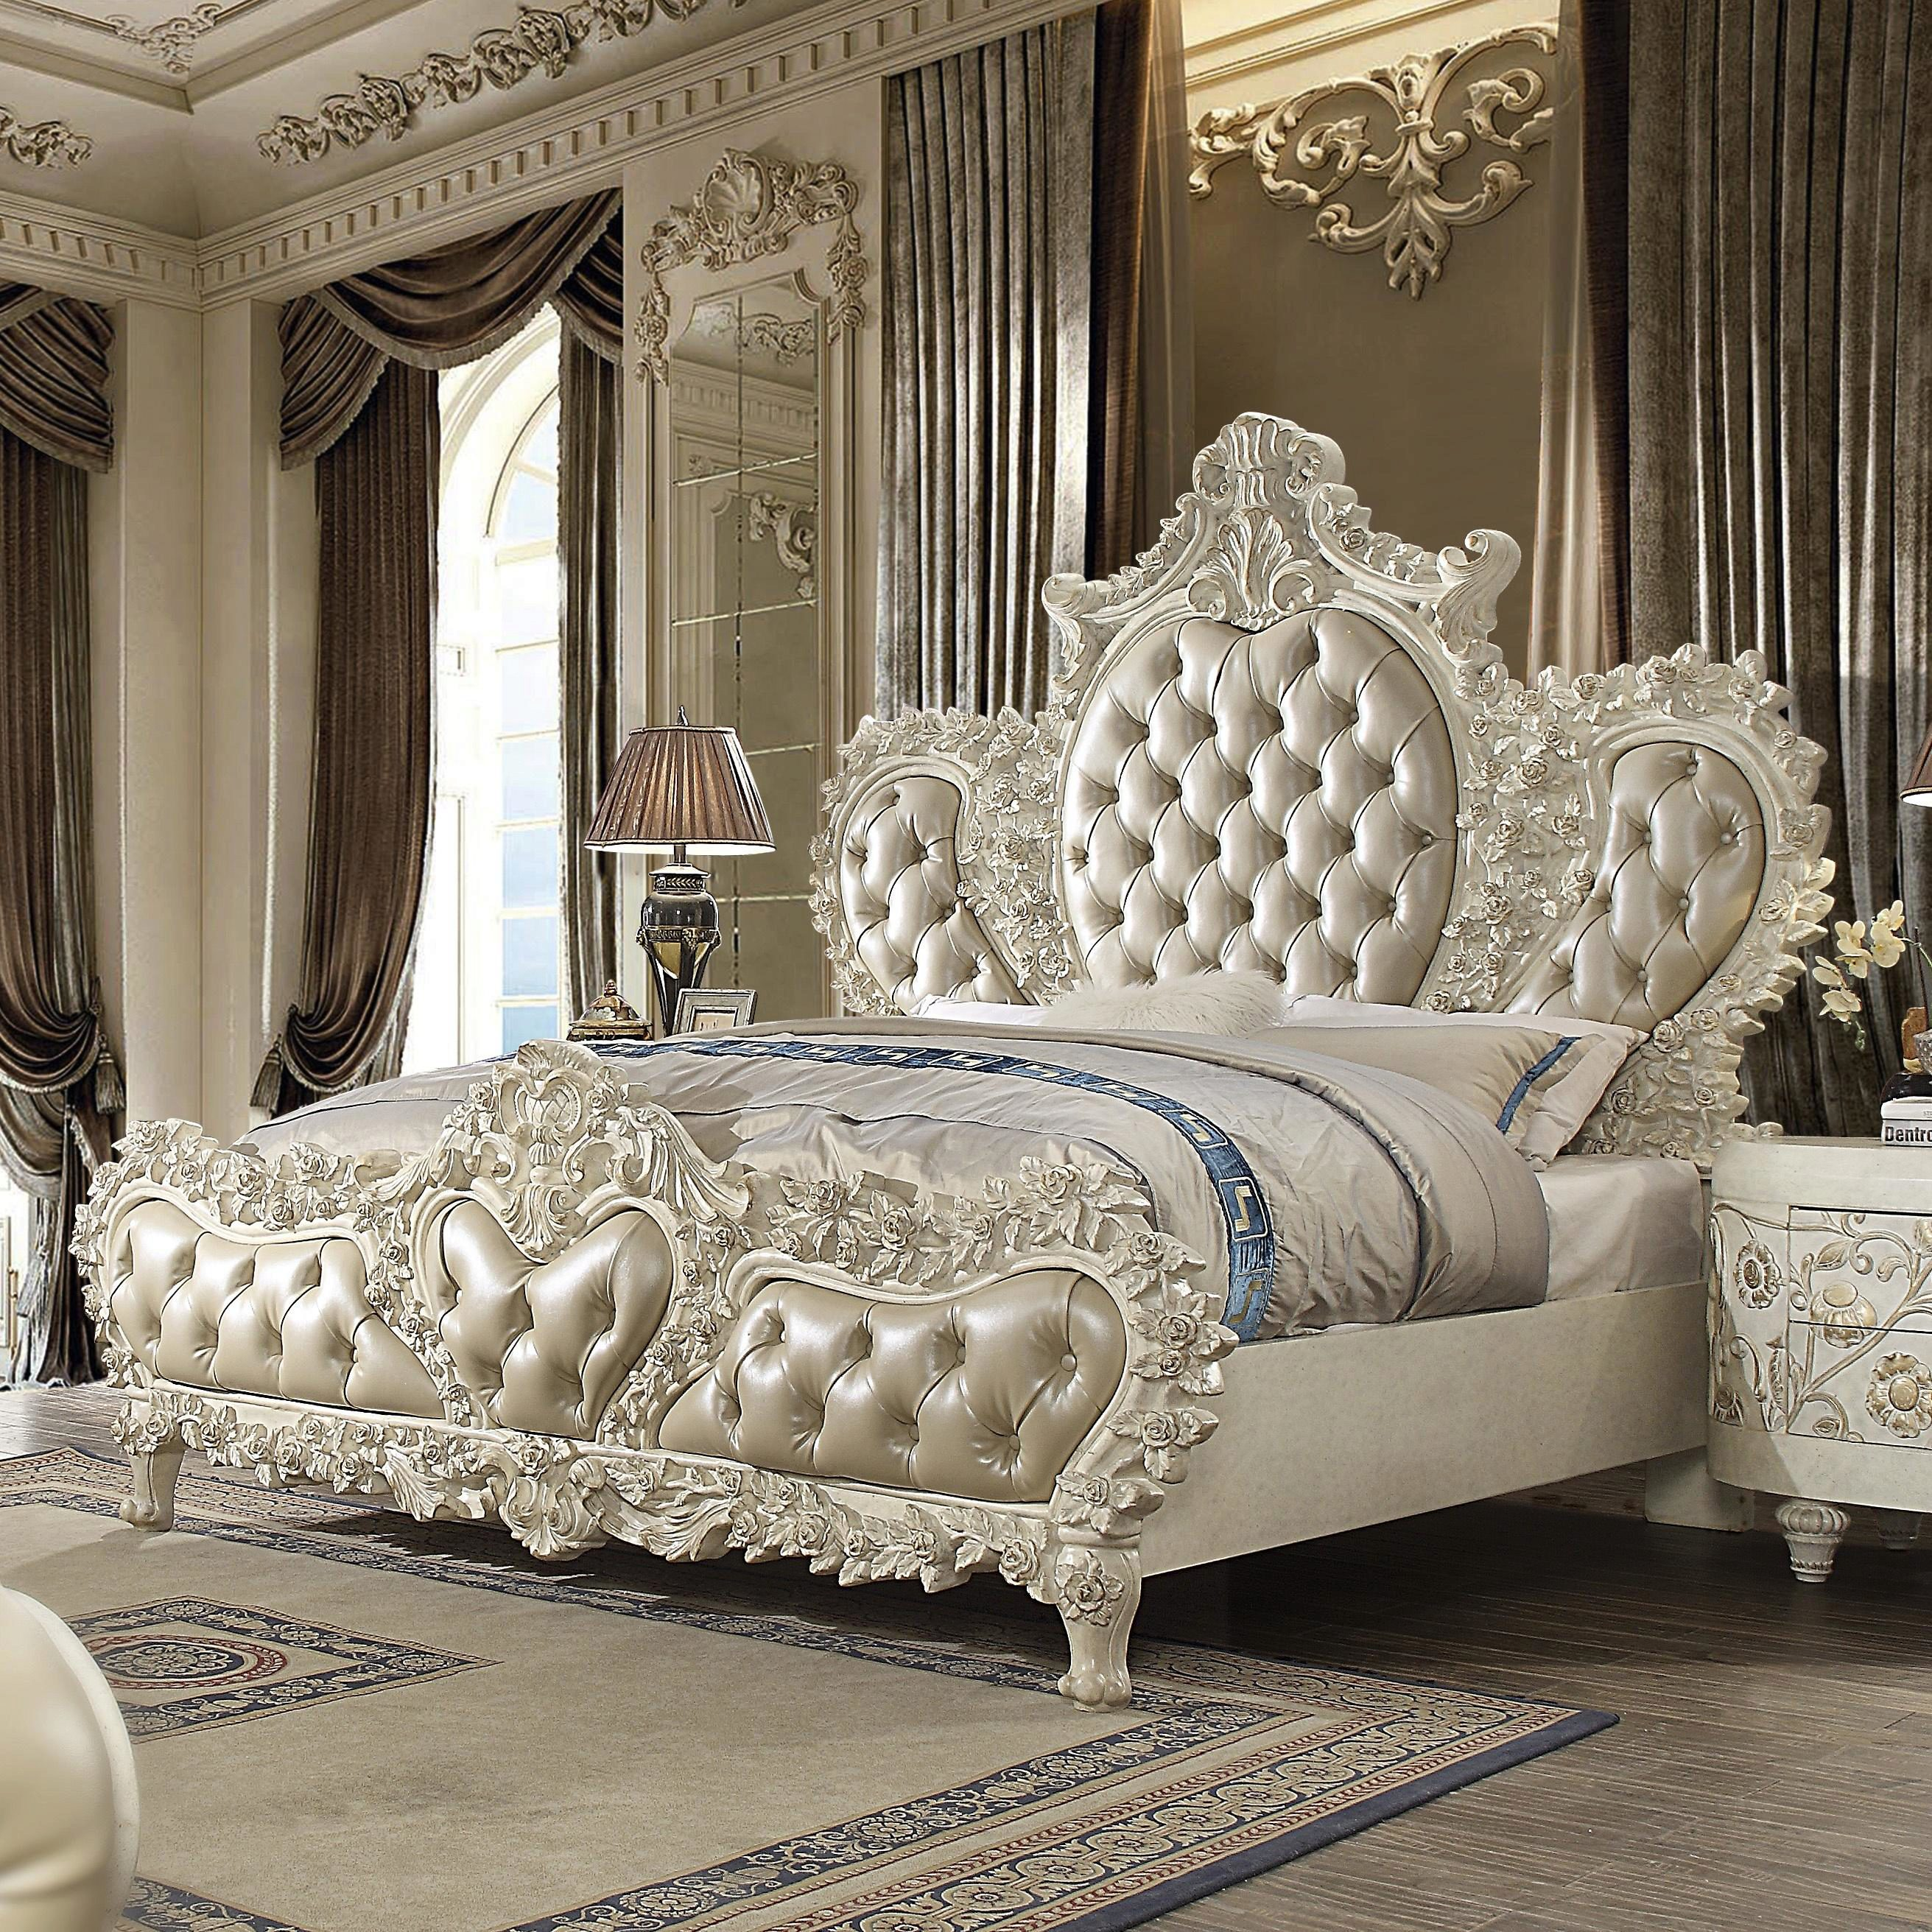 Luxury Cal King Bedroom Set 5 Pcs White Traditional Homey Design Hd 8030 Hd 8030 Bset5 Ck